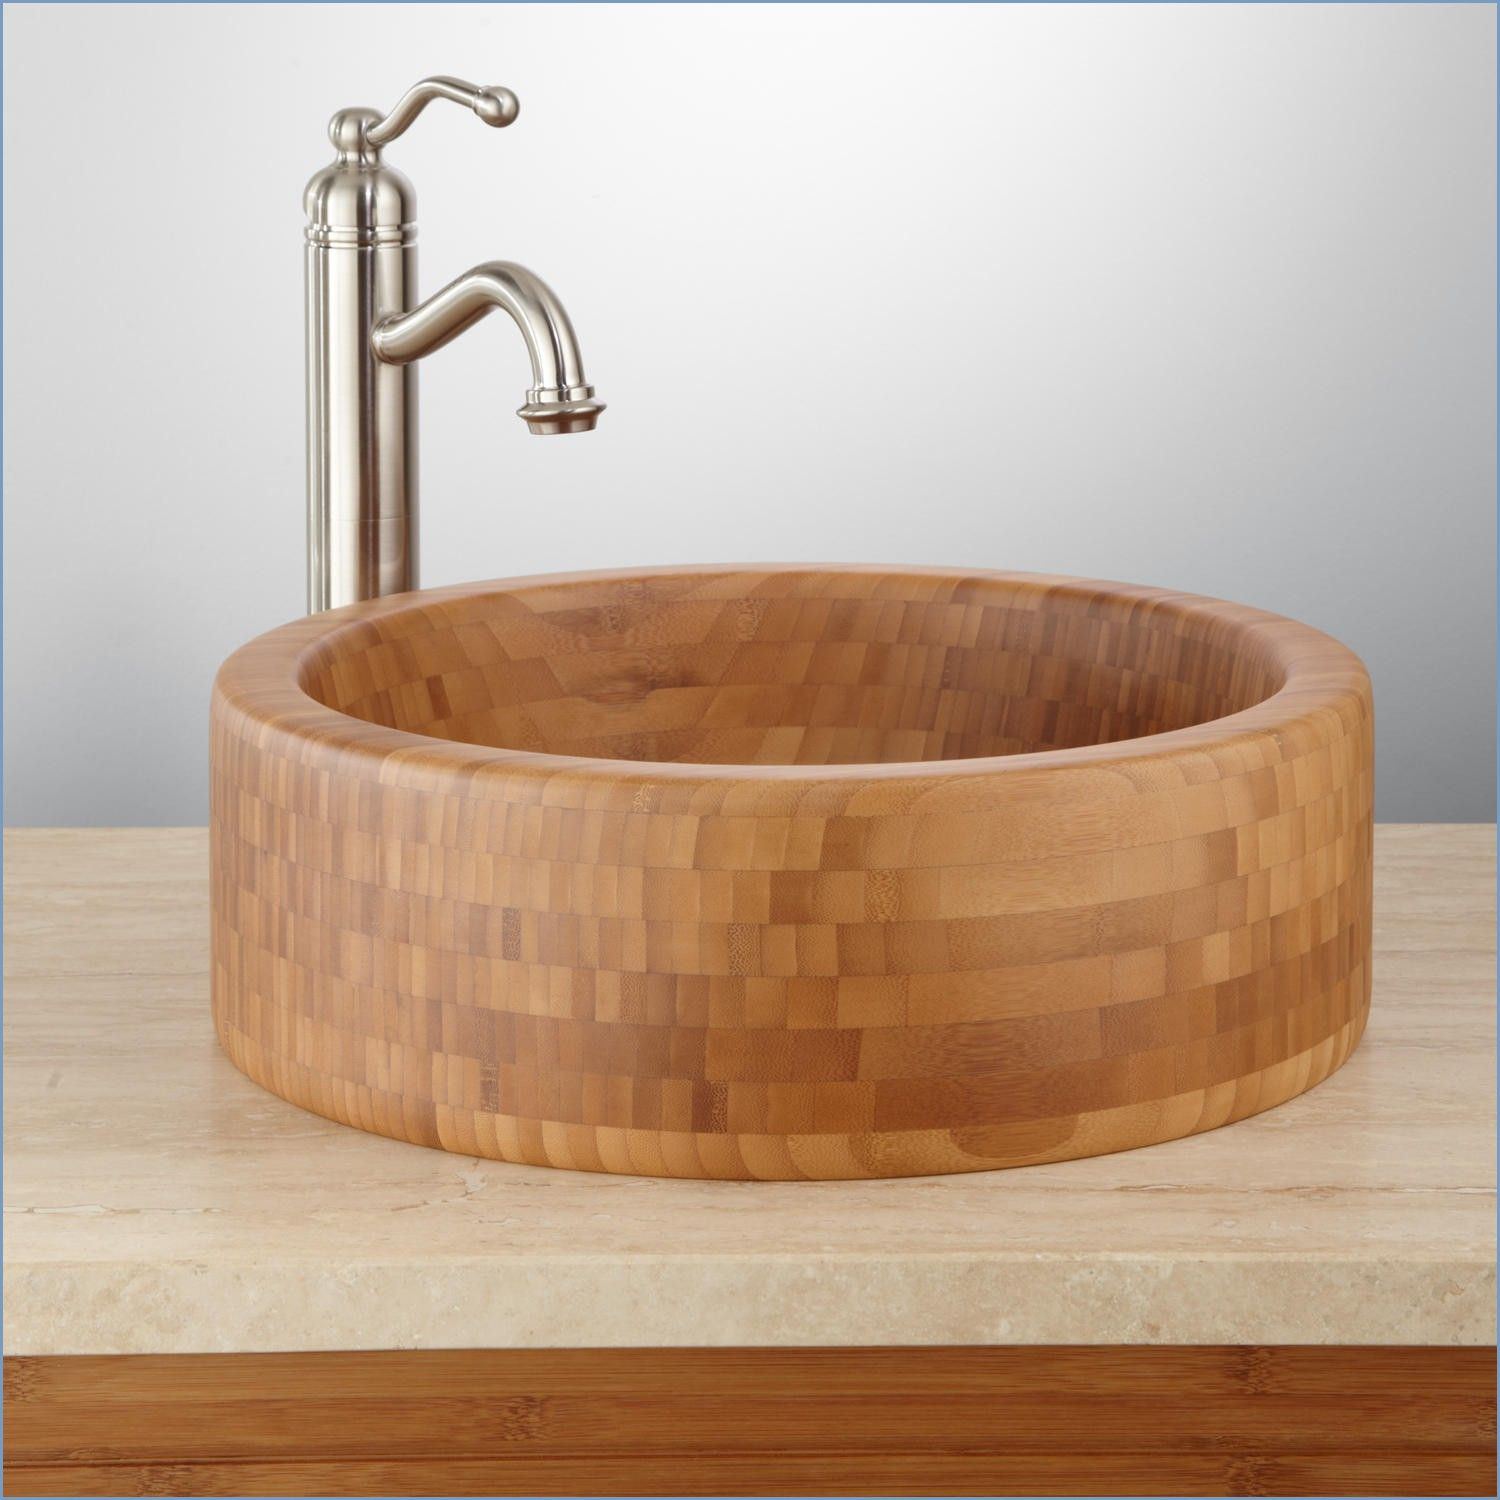 bamboo-vessel-sink-faucet-inspirational-details-about-signature ...